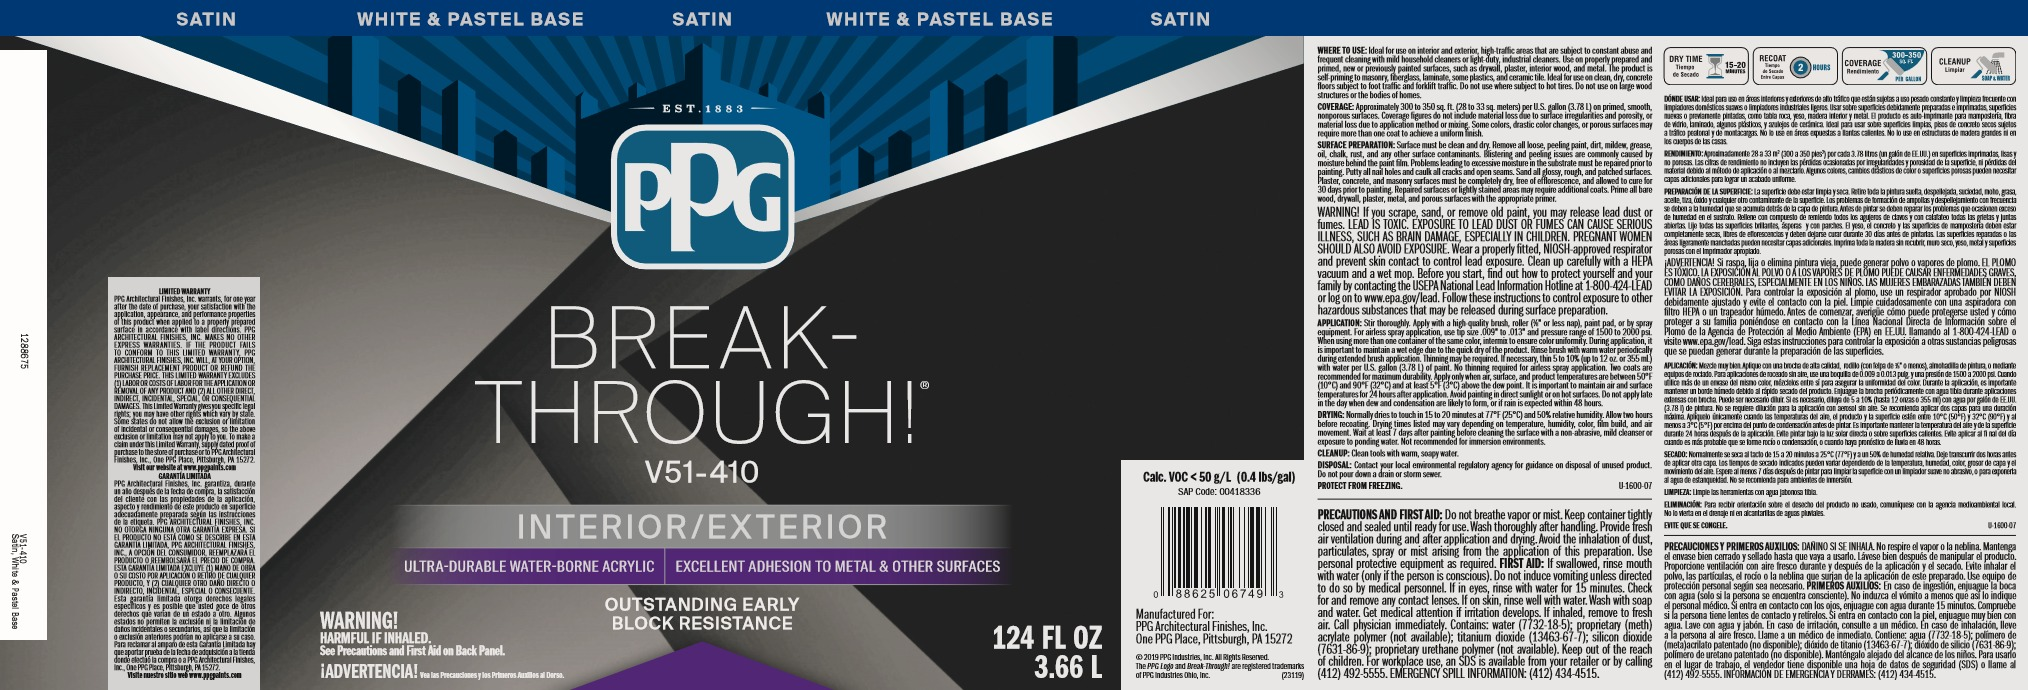 Breakthrough by PPG Paint label